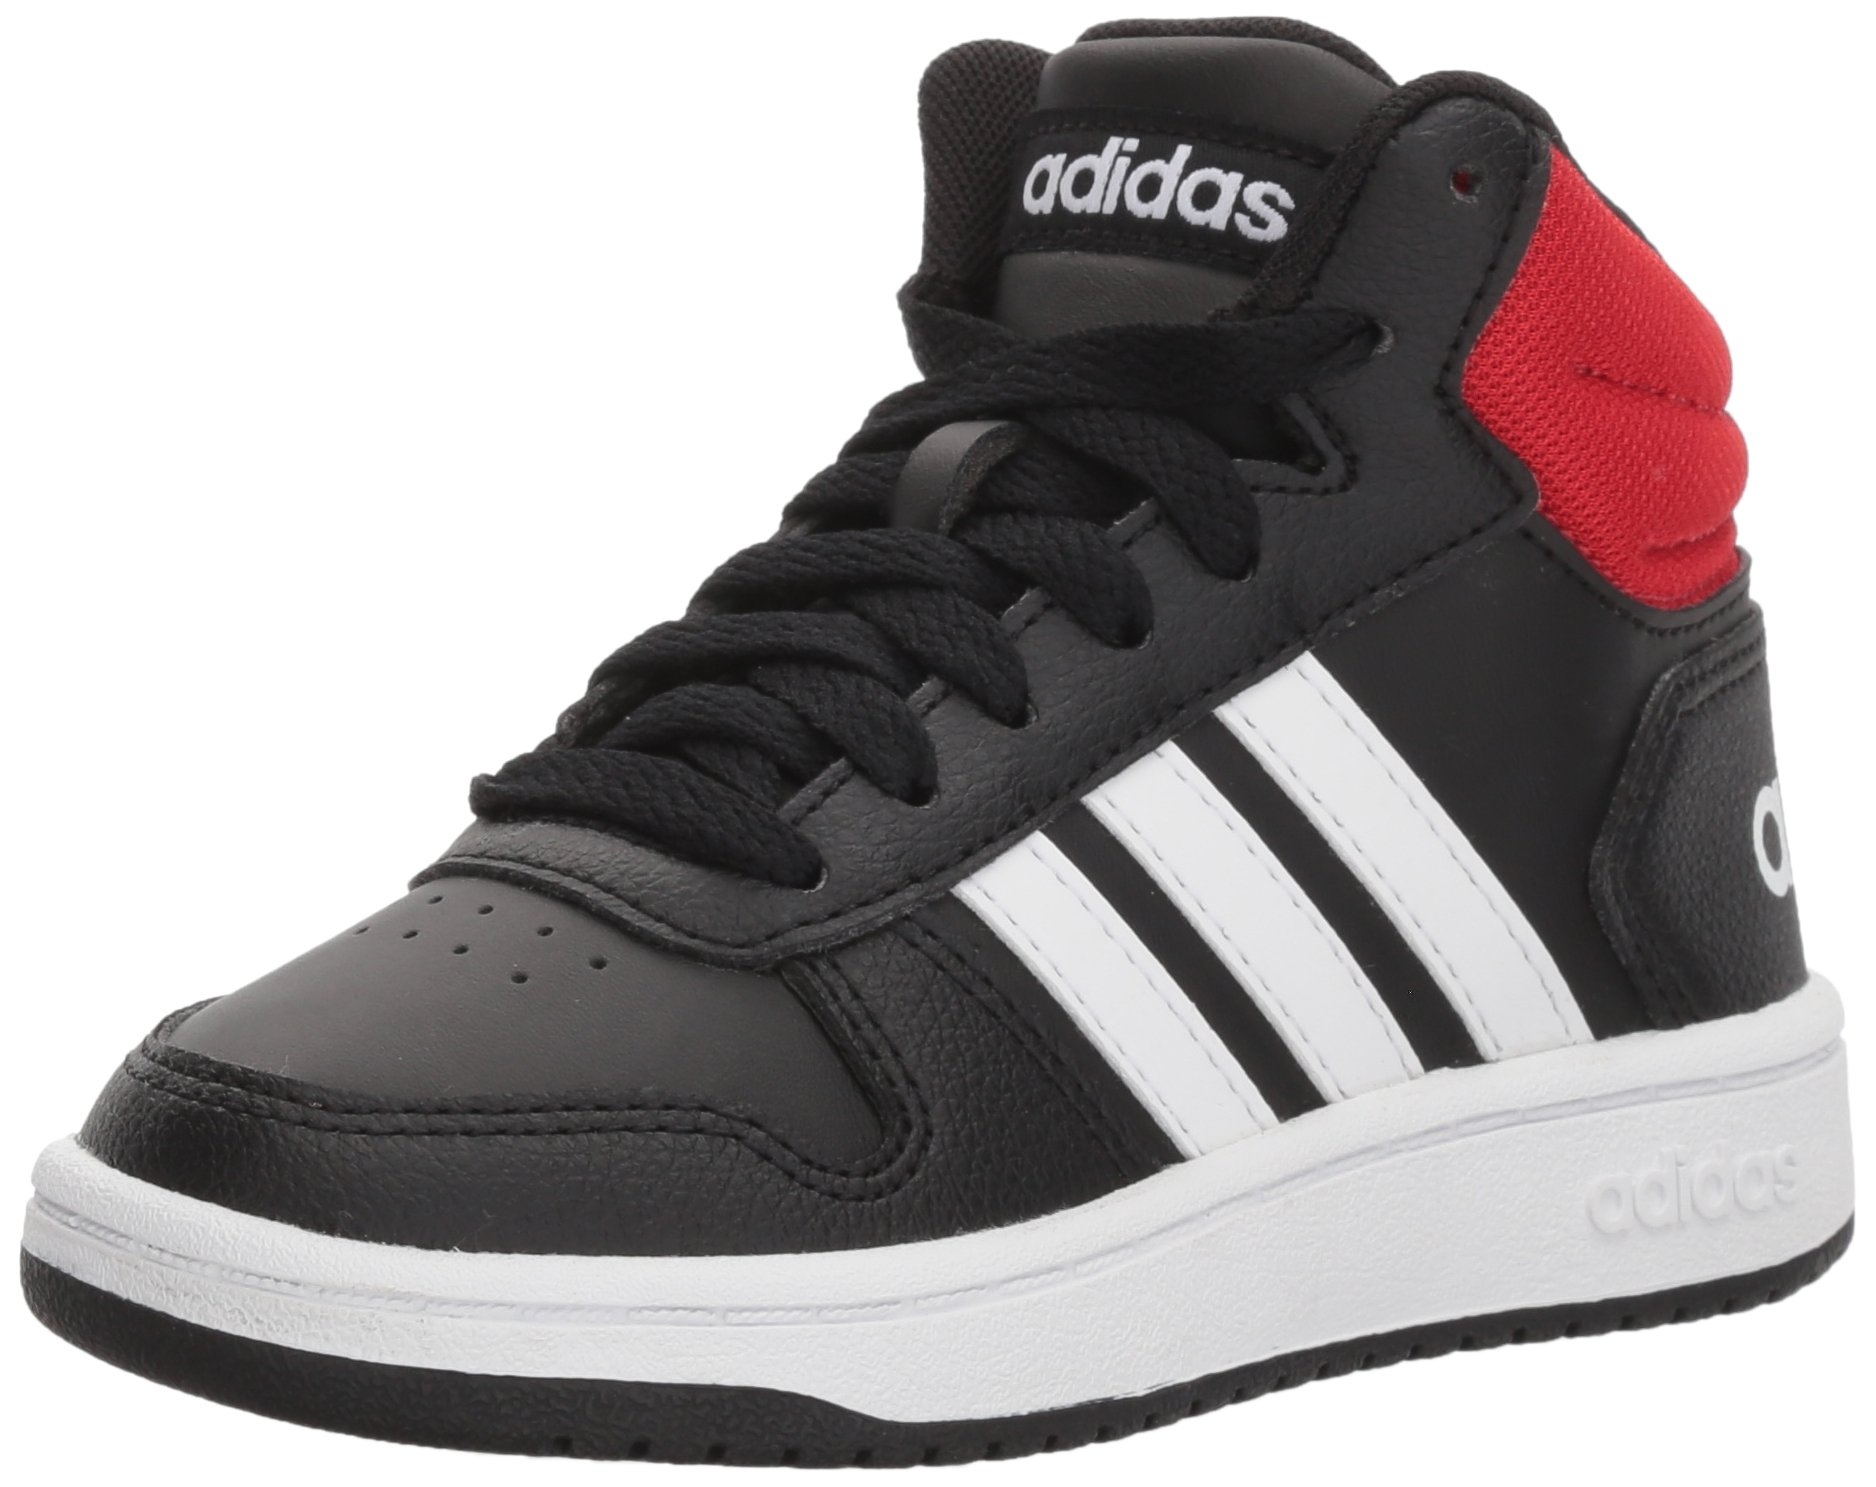 adidas Unisex Hoops Mid 2.0 Basketball Shoe, Black/White/red, 3.5 Big Kid by adidas